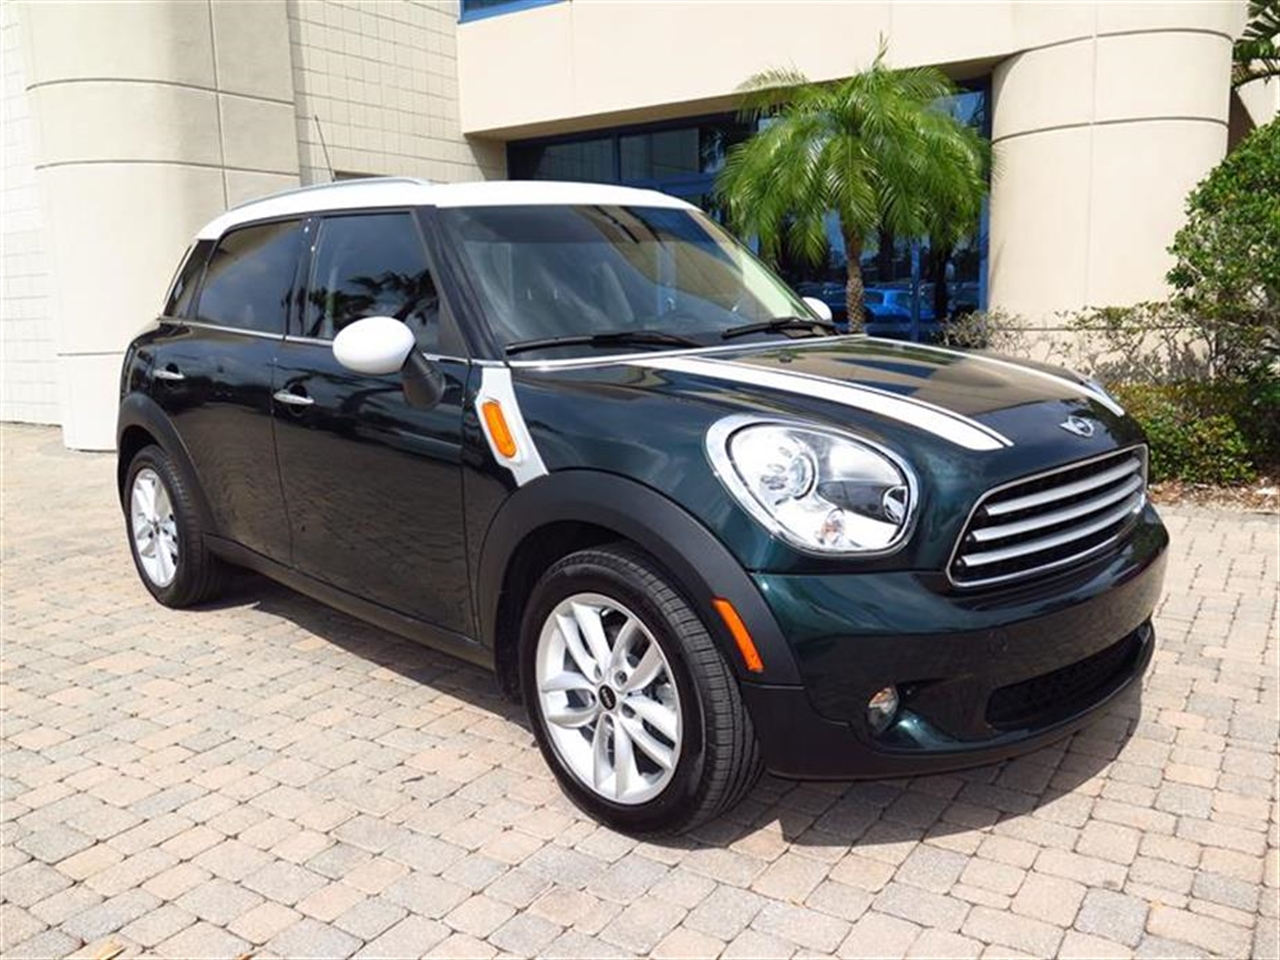 2013 MINI COOPER COUNTRYMAN FWD 4dr 4988 miles 2 front cup holders 3 12V pwr outlets 3 rea